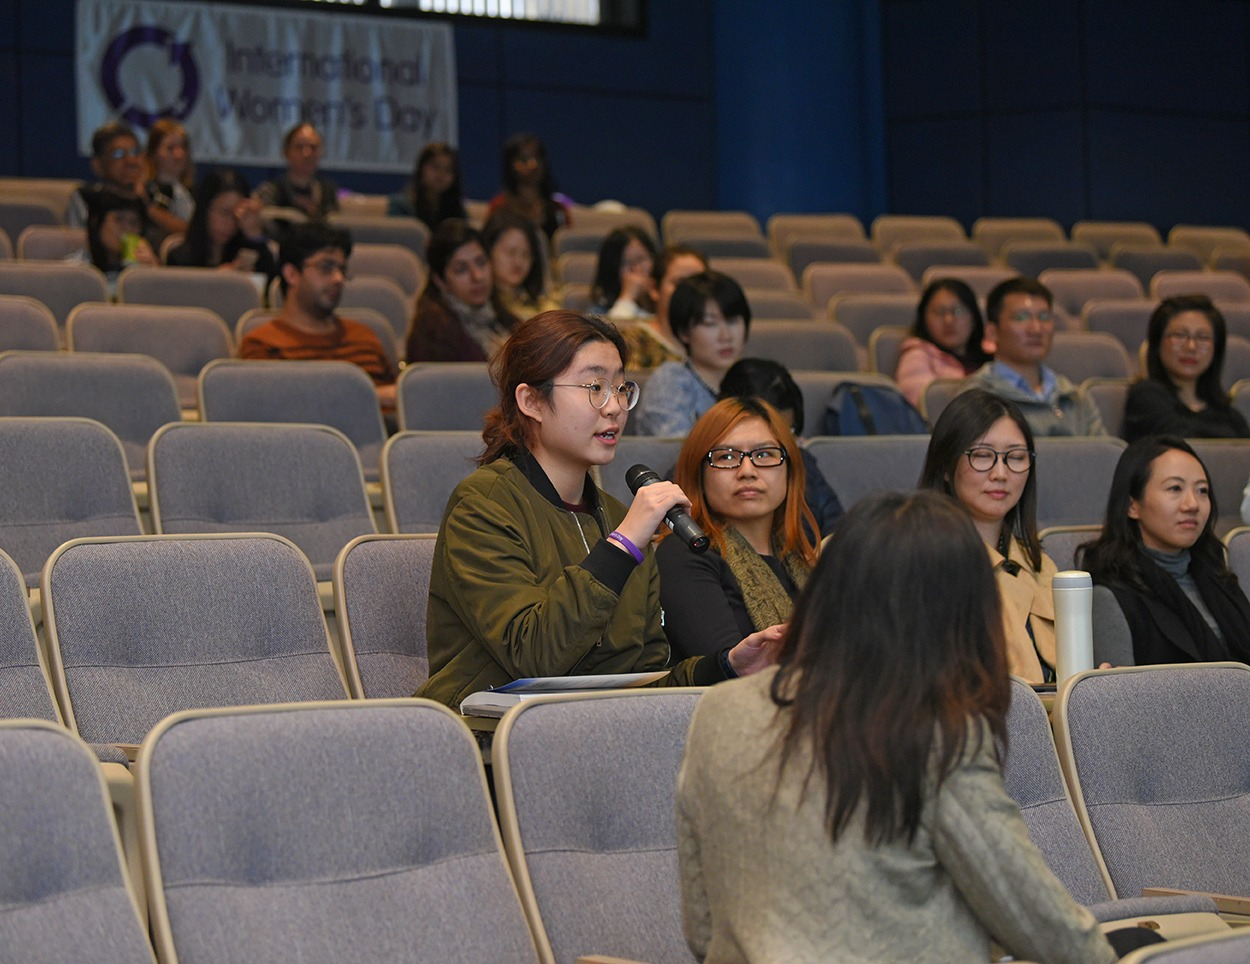 An audience expressing her views.